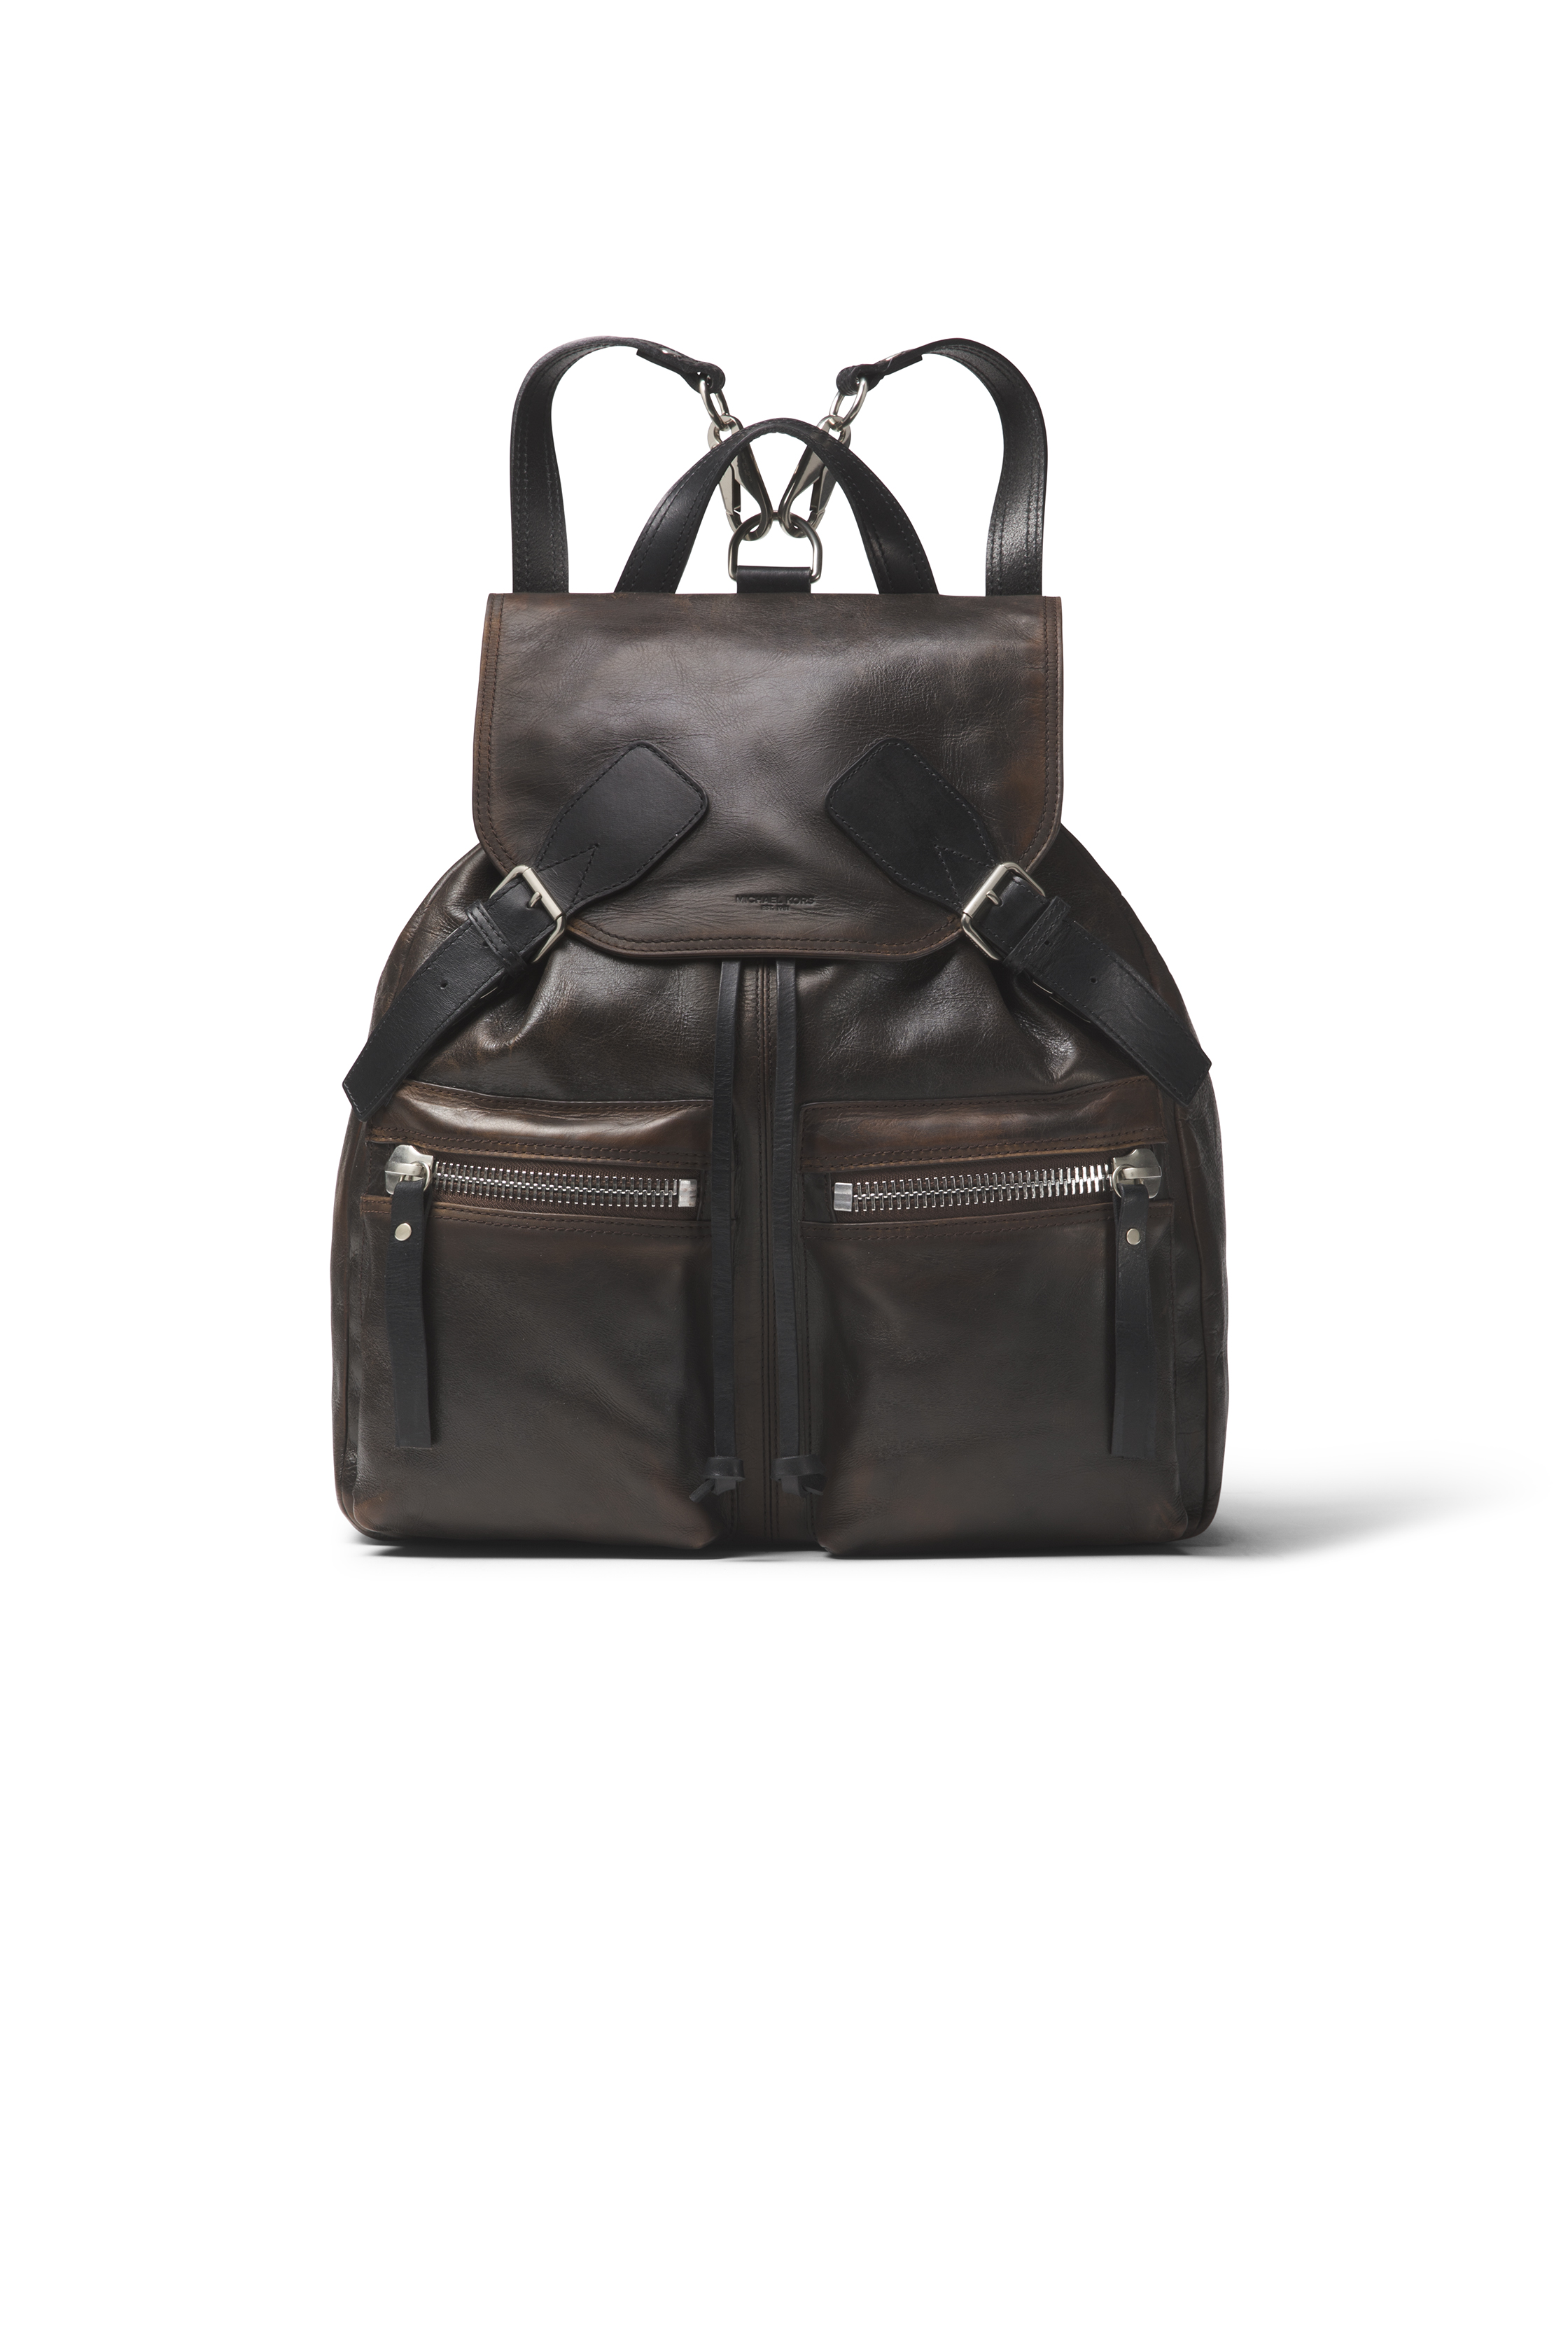 6307ff3f915d Travel the world in style with Michael Kors men's bags | People Asia